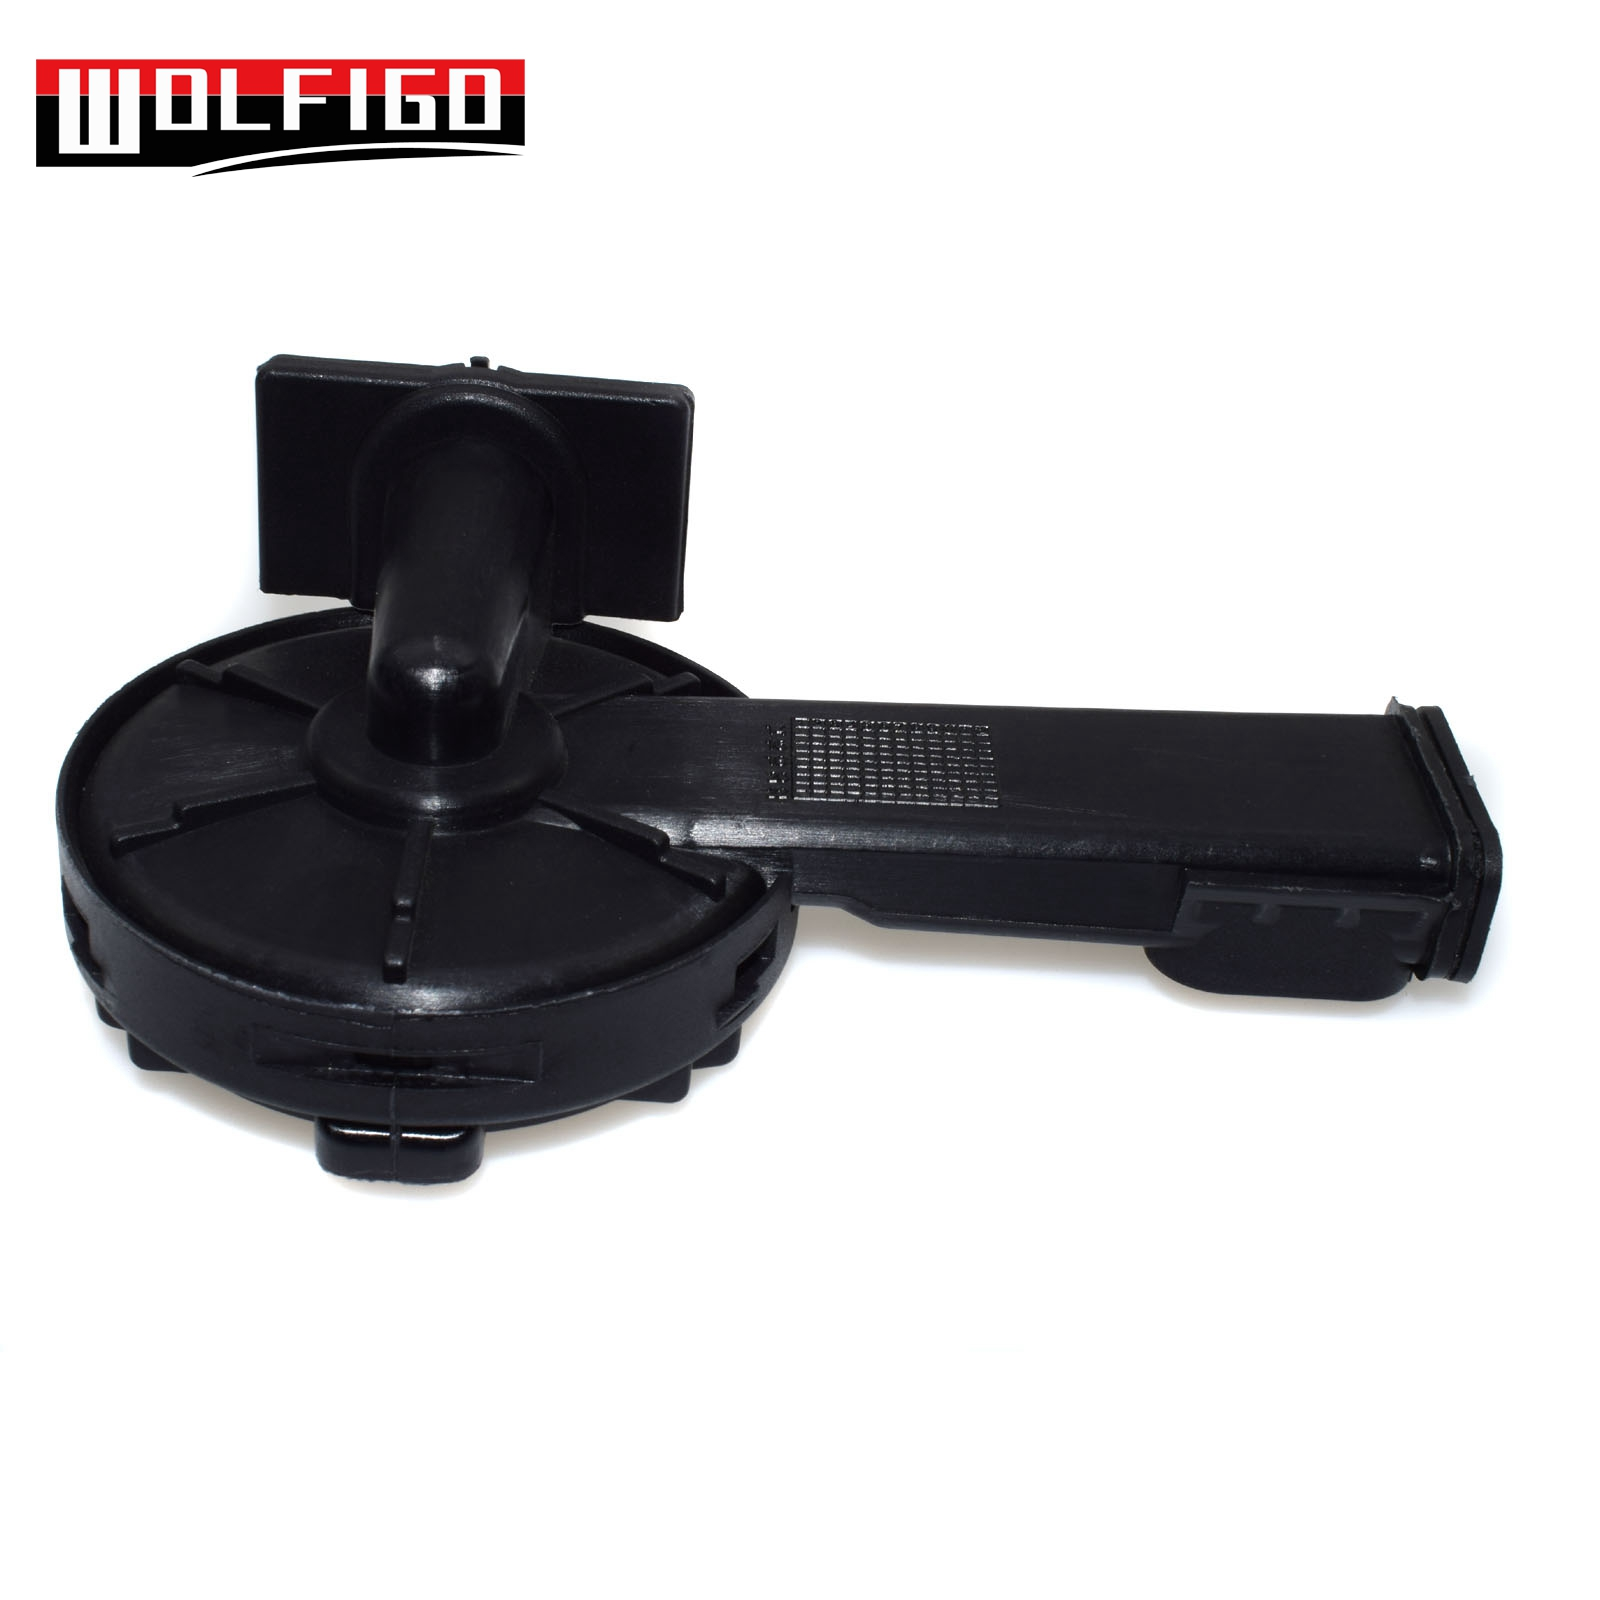 US $14 79 20% OFF WOLFIGO New PCV Valve With Diaphragm crankcase  ventilation For Holden Astra Vectra Cruze 1 6L, 1 8L 55564395-in Valves &  Parts from